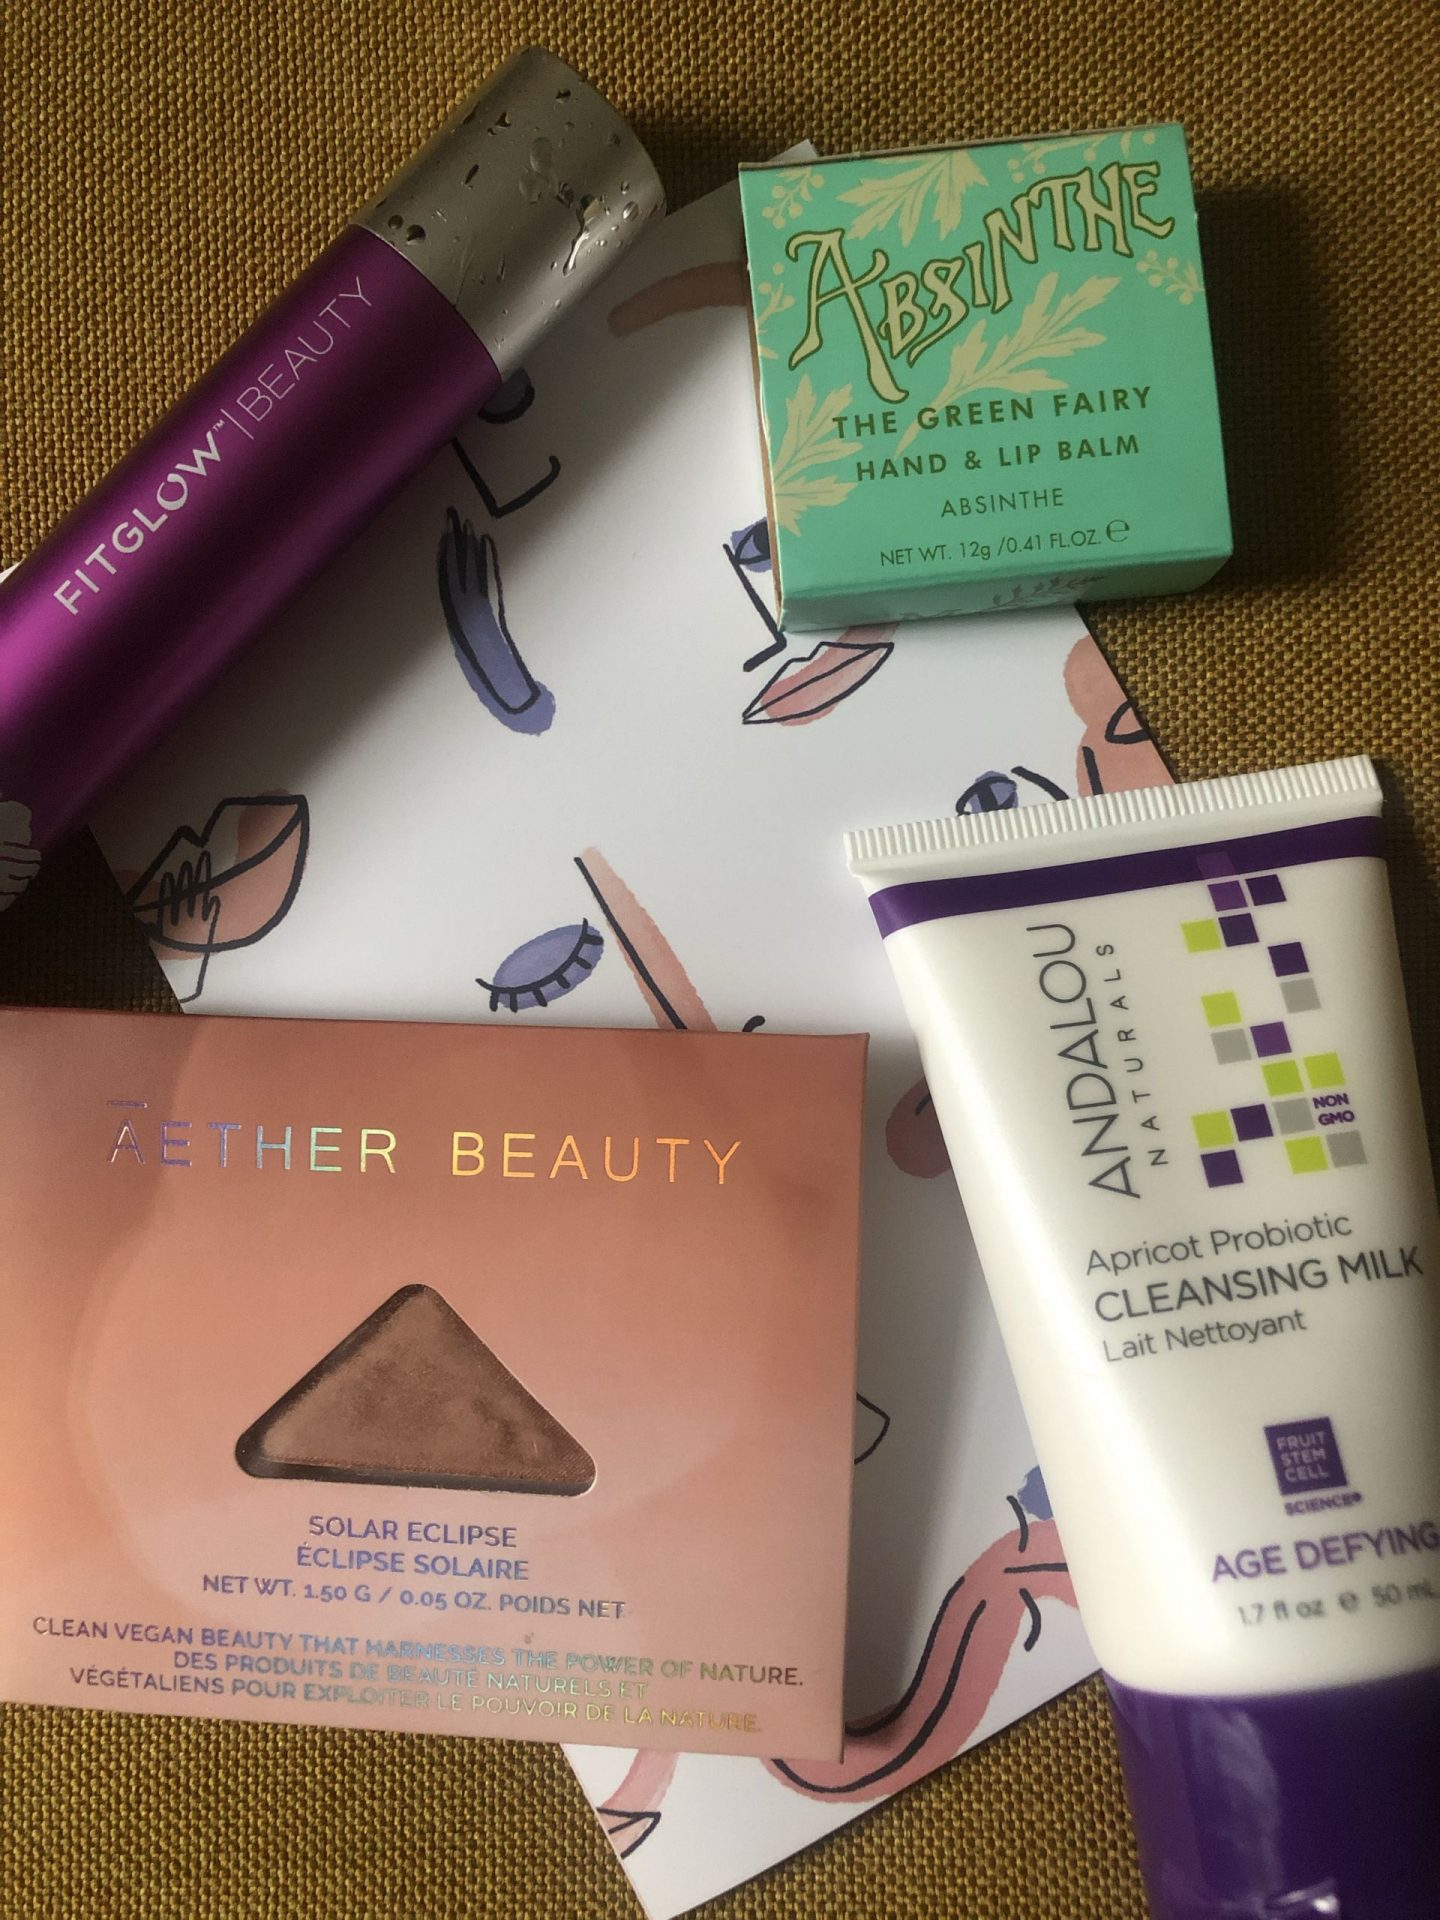 NC blogger Rebecca Lately shares her Petit Vour January 2020 box. Check out this month's full size products, which are mascara and hand balm!